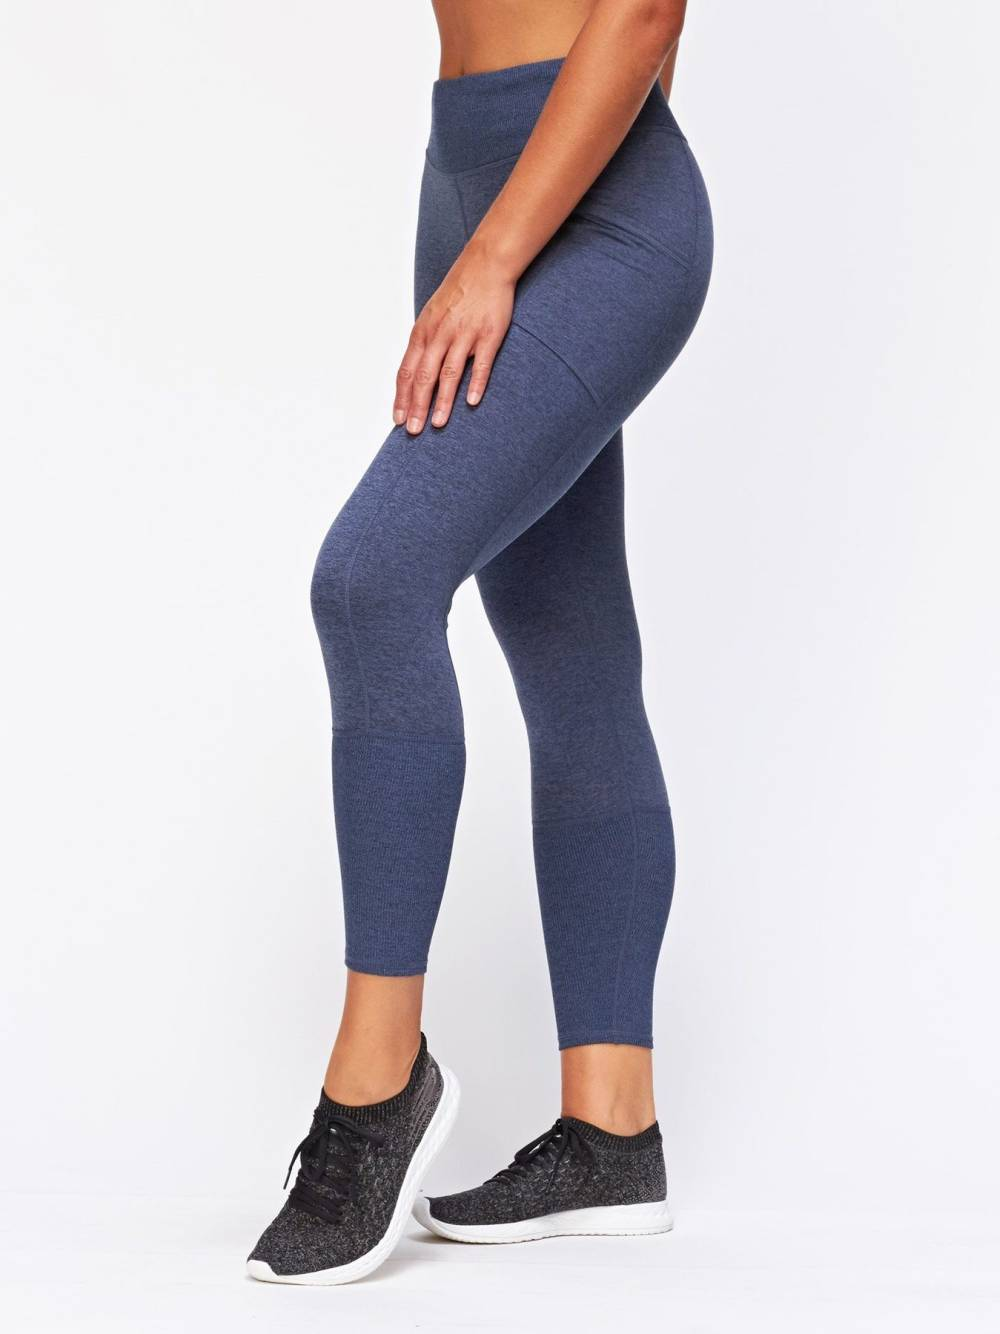 threads 4 thought exercise leggings with pockets